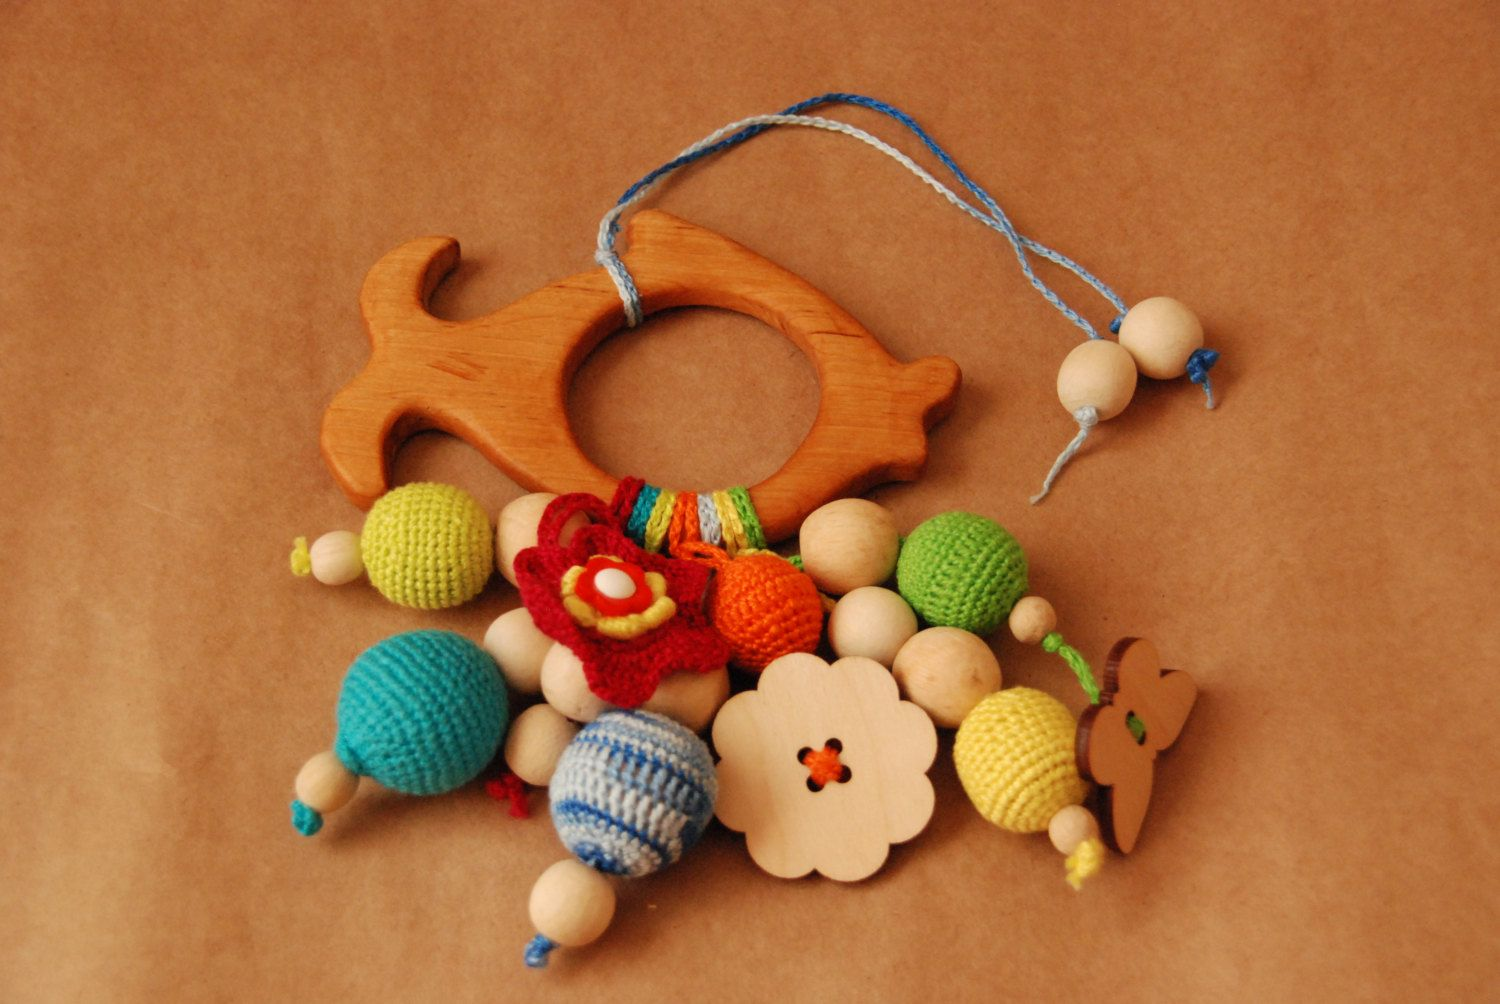 Toys car for boy  Baby gift Baby rattle Teething toy Cute wooden Fish Baby shower gift